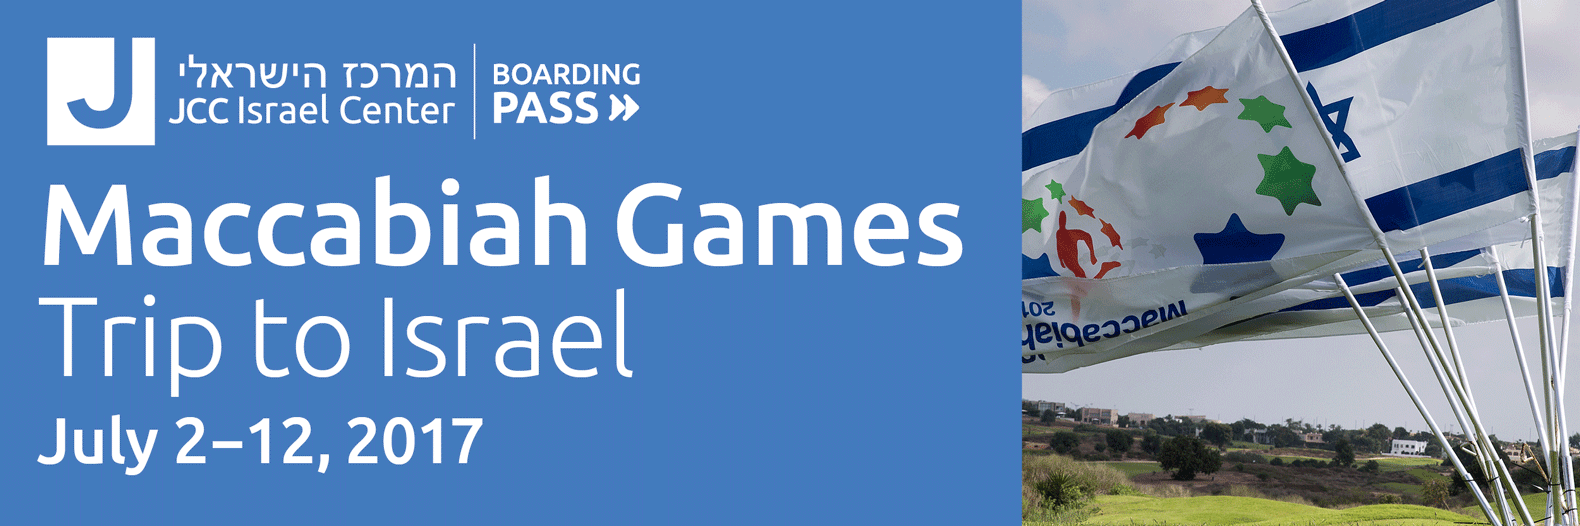 2017 Maccabiah Games General Boarding Pass Trip